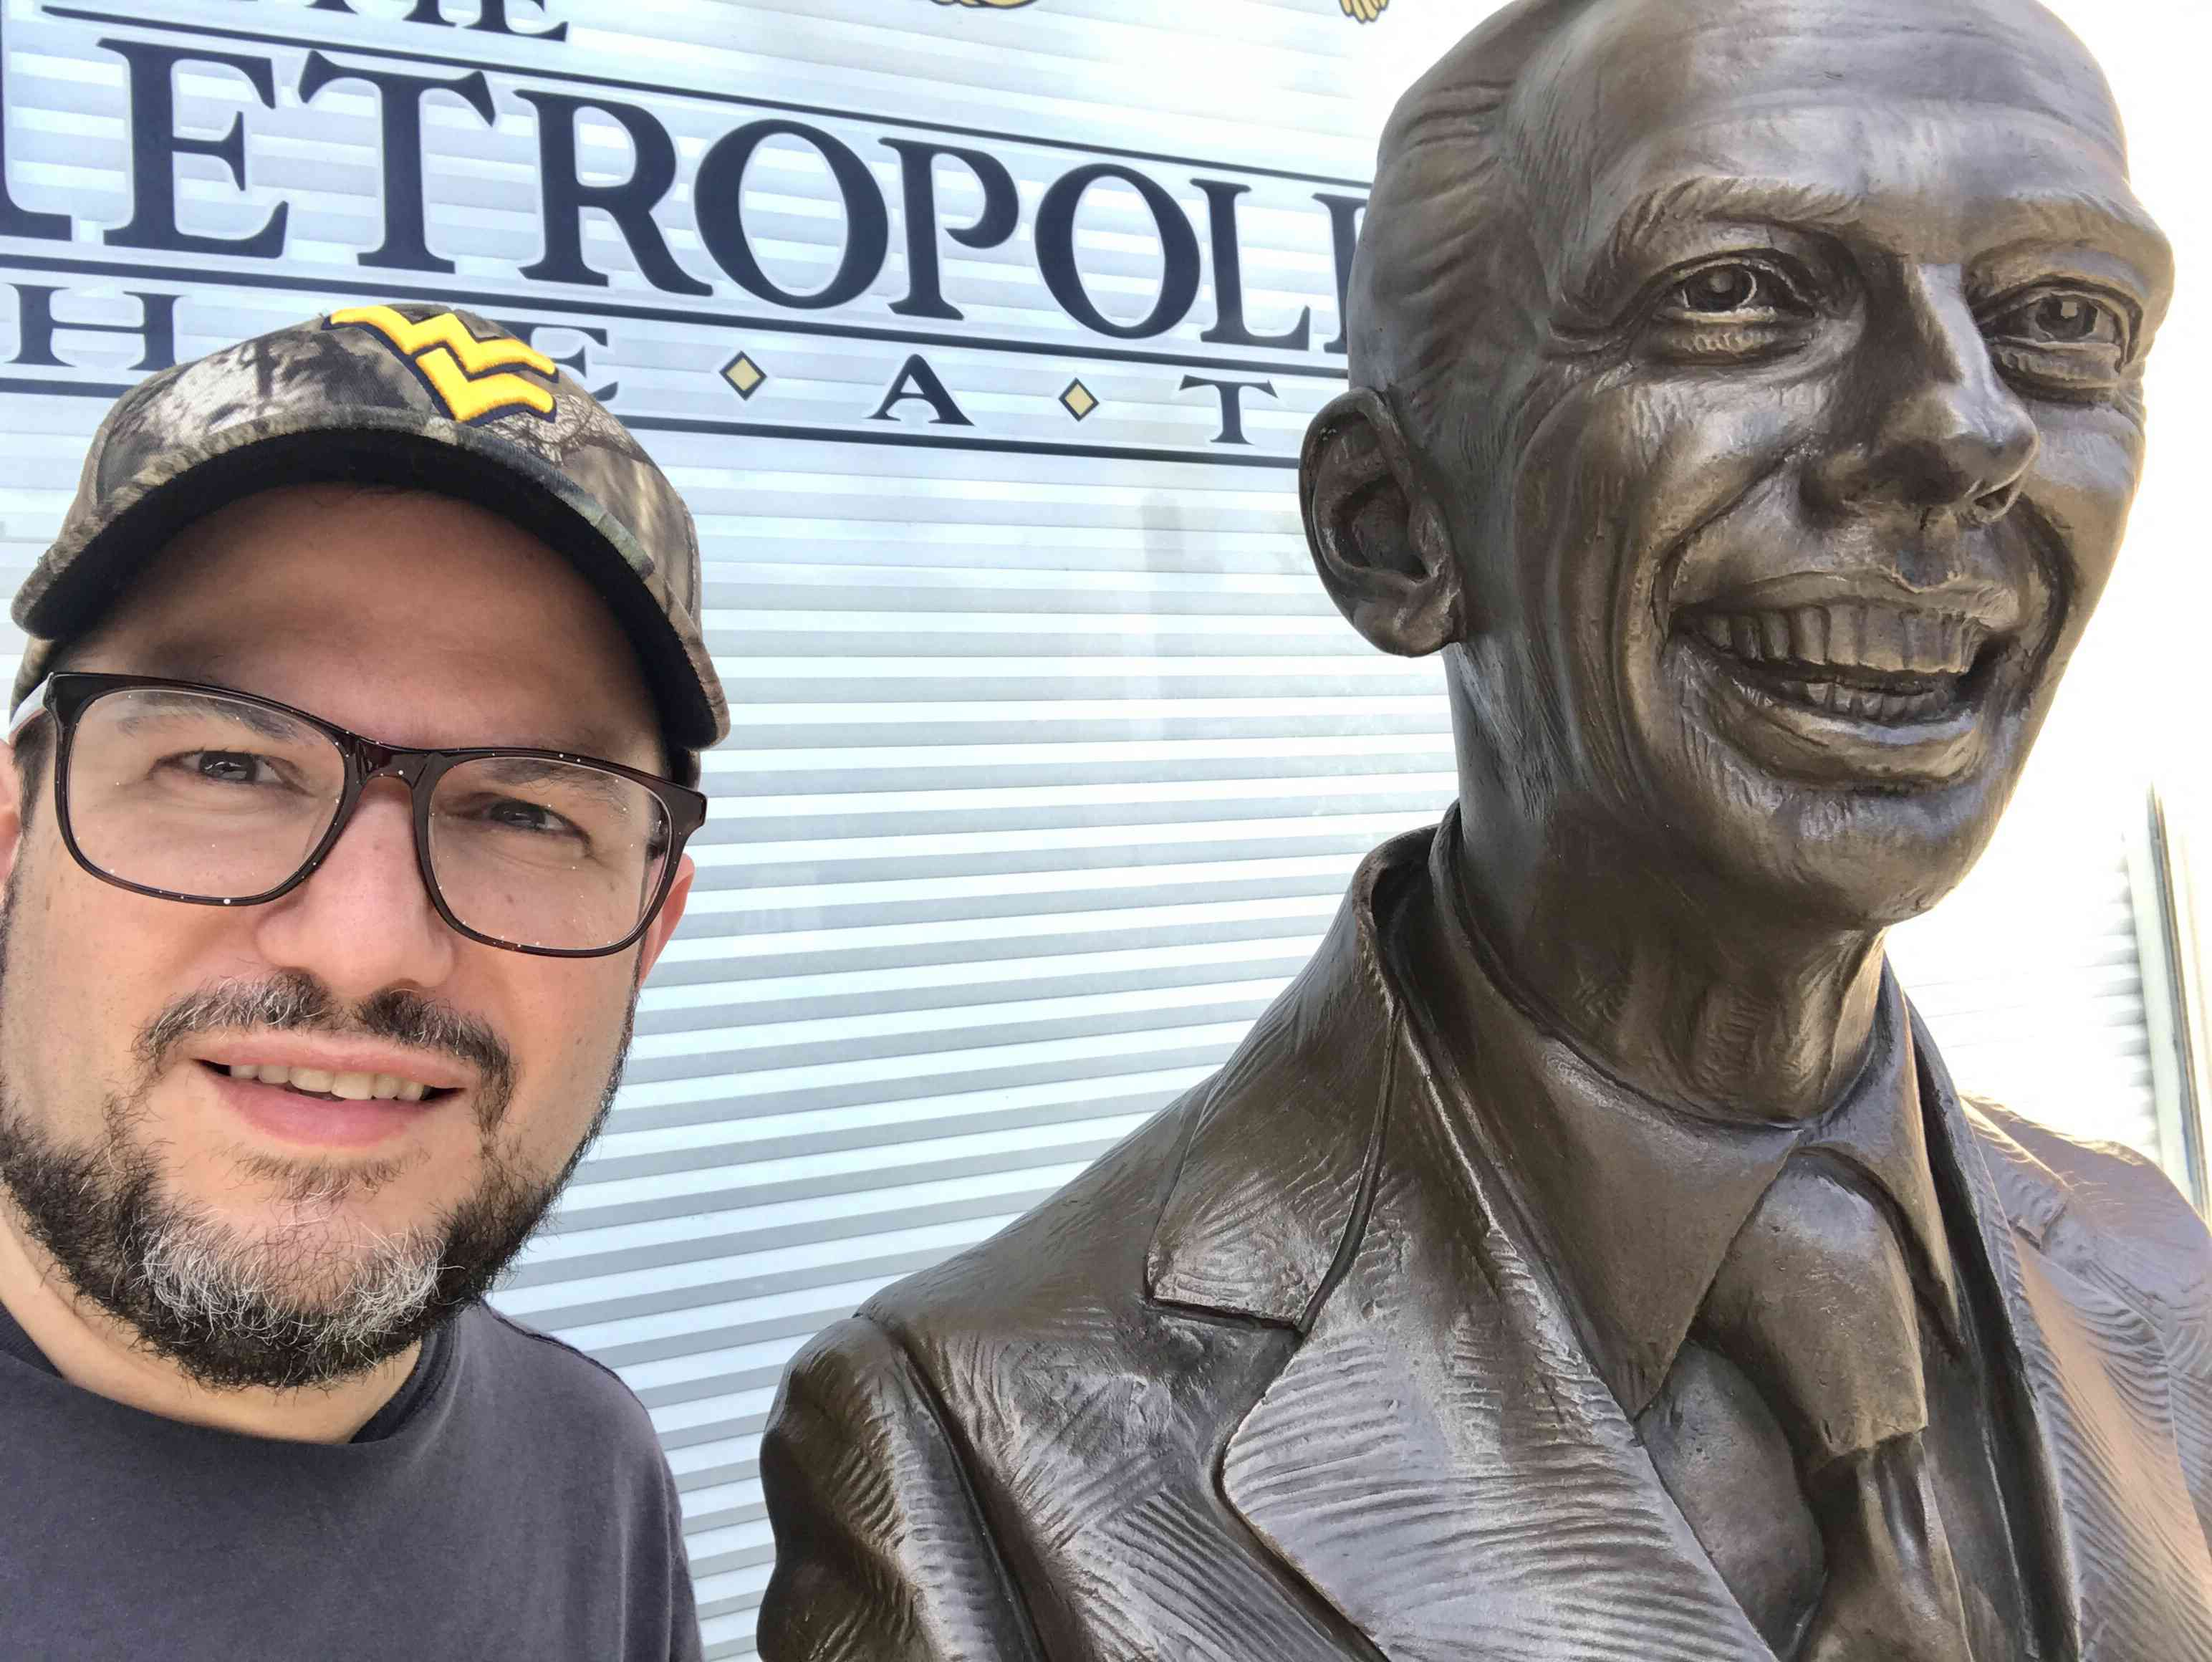 A statue of Don Knotts was recently installed in front of the Metropolitan Theater on High Street, and it's the perfect spot for selfies.